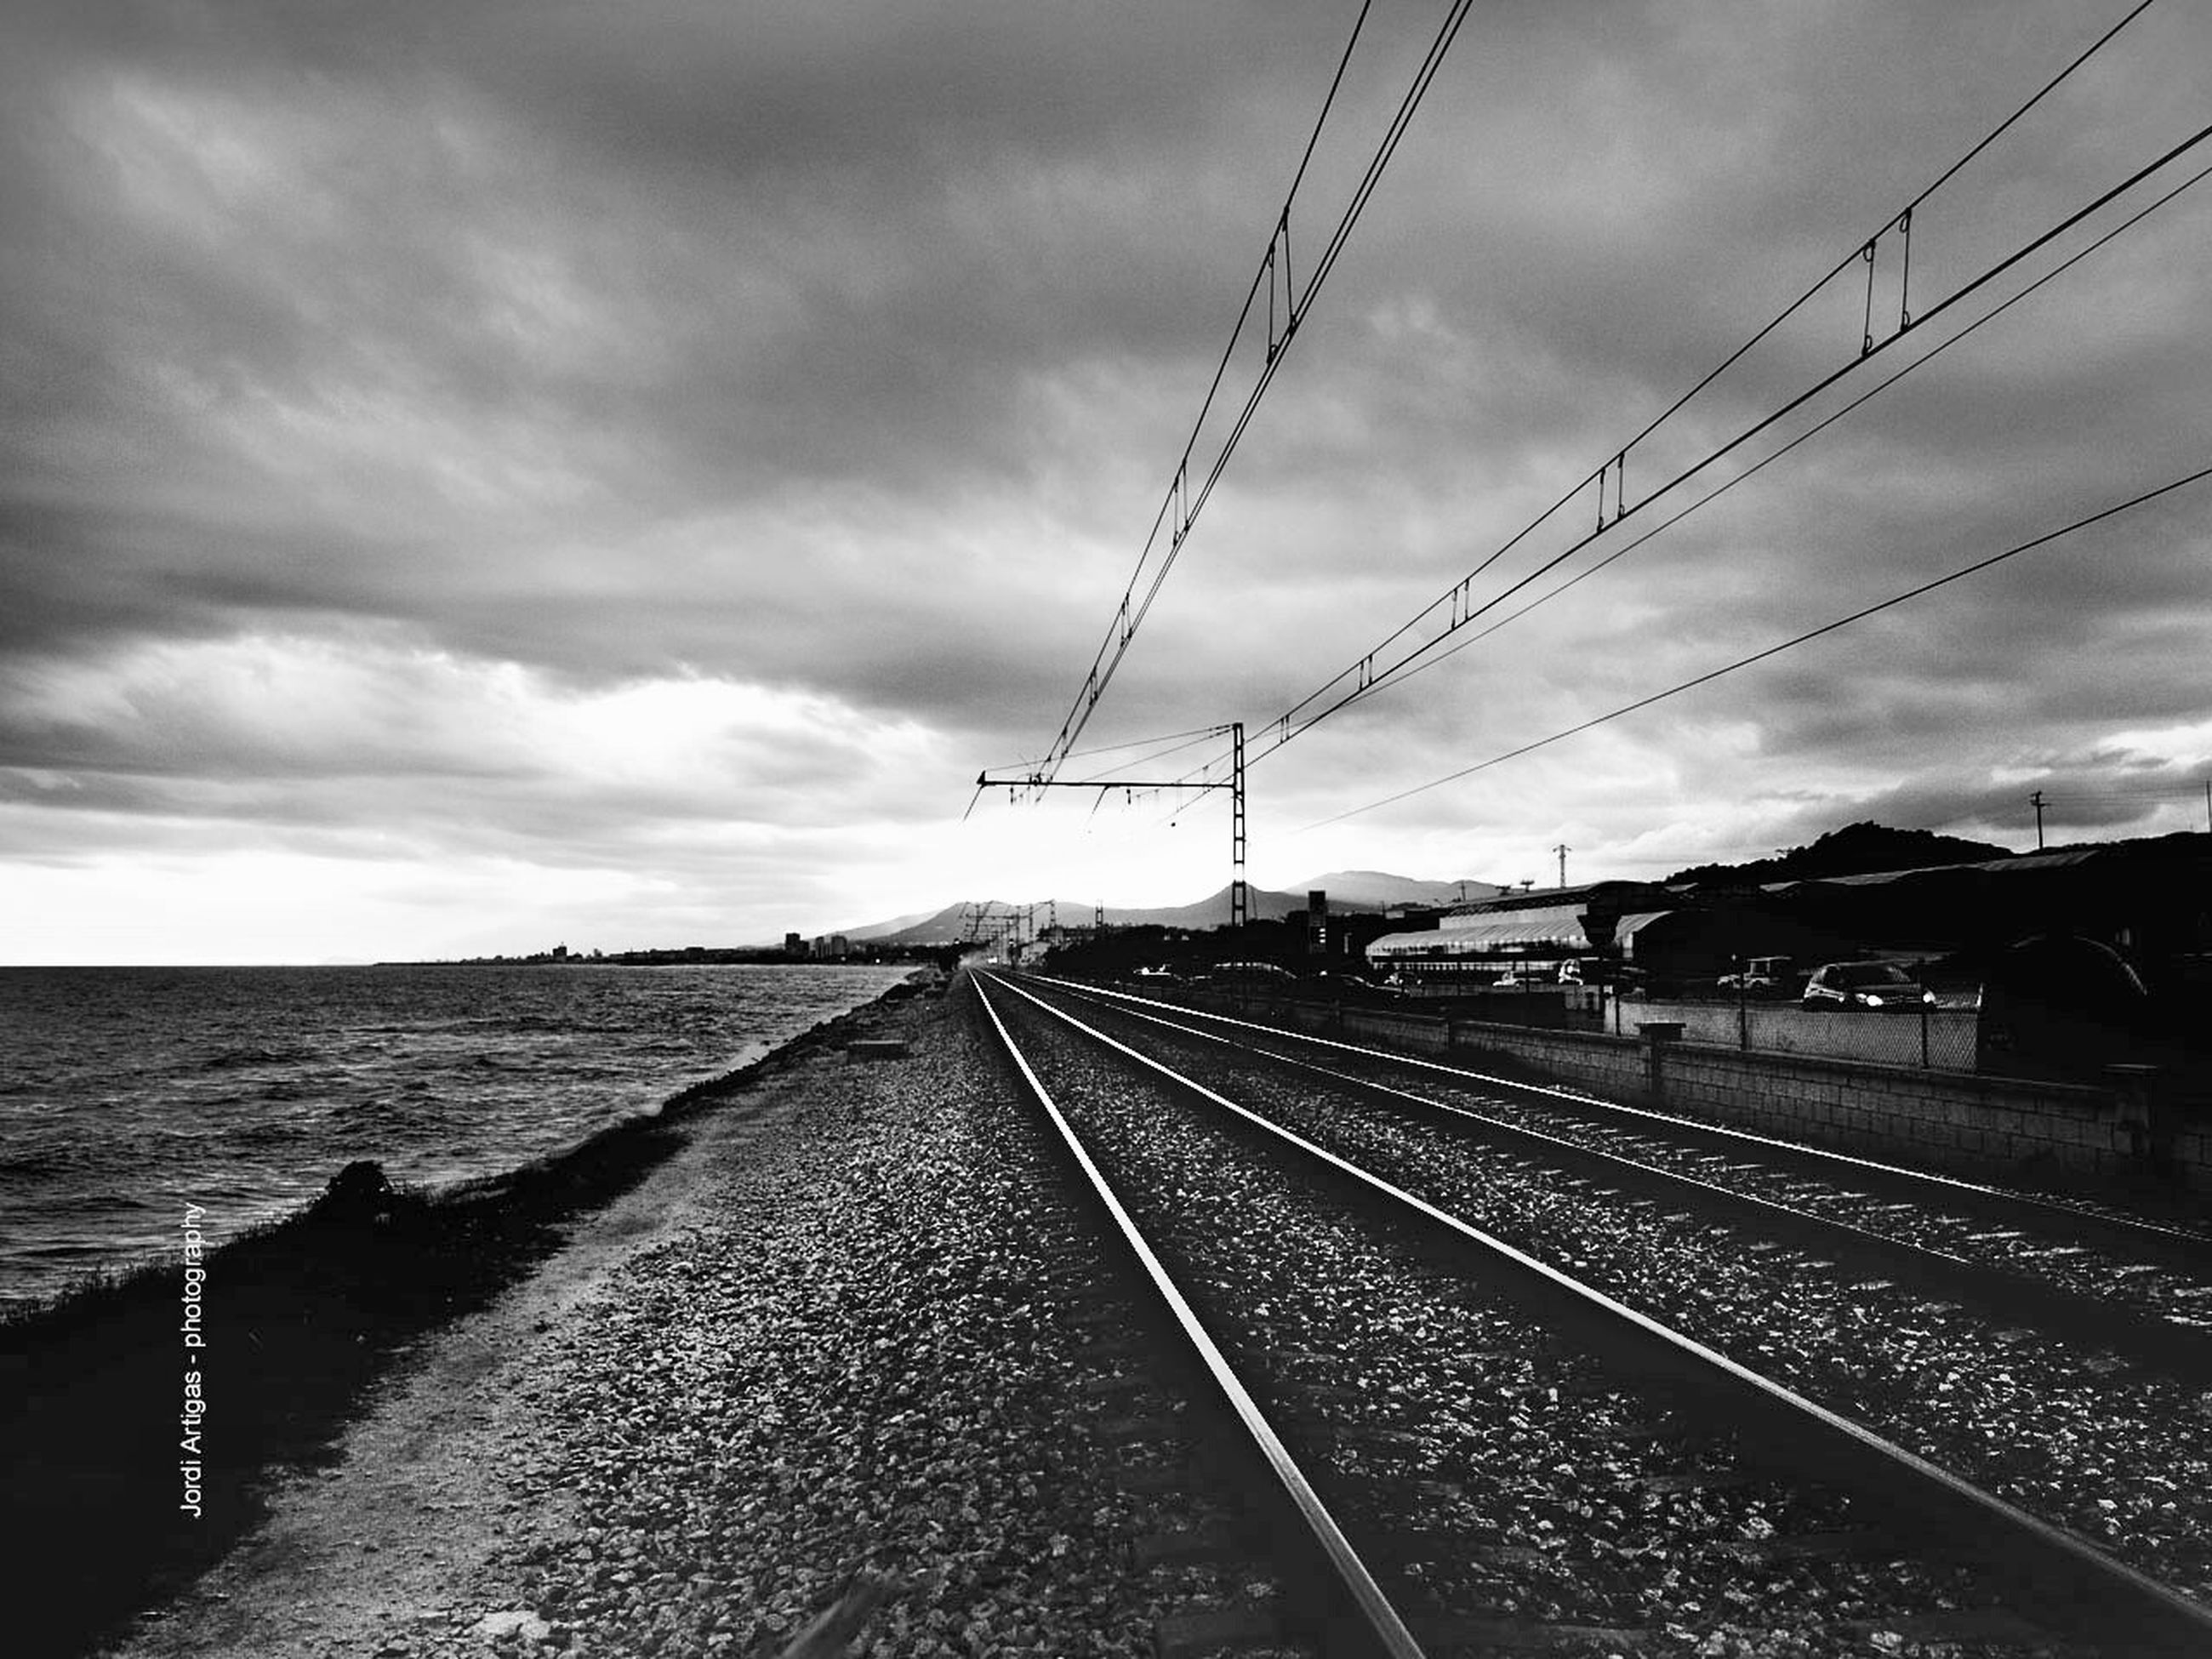 sky, cloud - sky, railroad track, transportation, water, the way forward, cloudy, rail transportation, diminishing perspective, cloud, built structure, vanishing point, architecture, connection, sea, overcast, public transportation, travel, day, outdoors